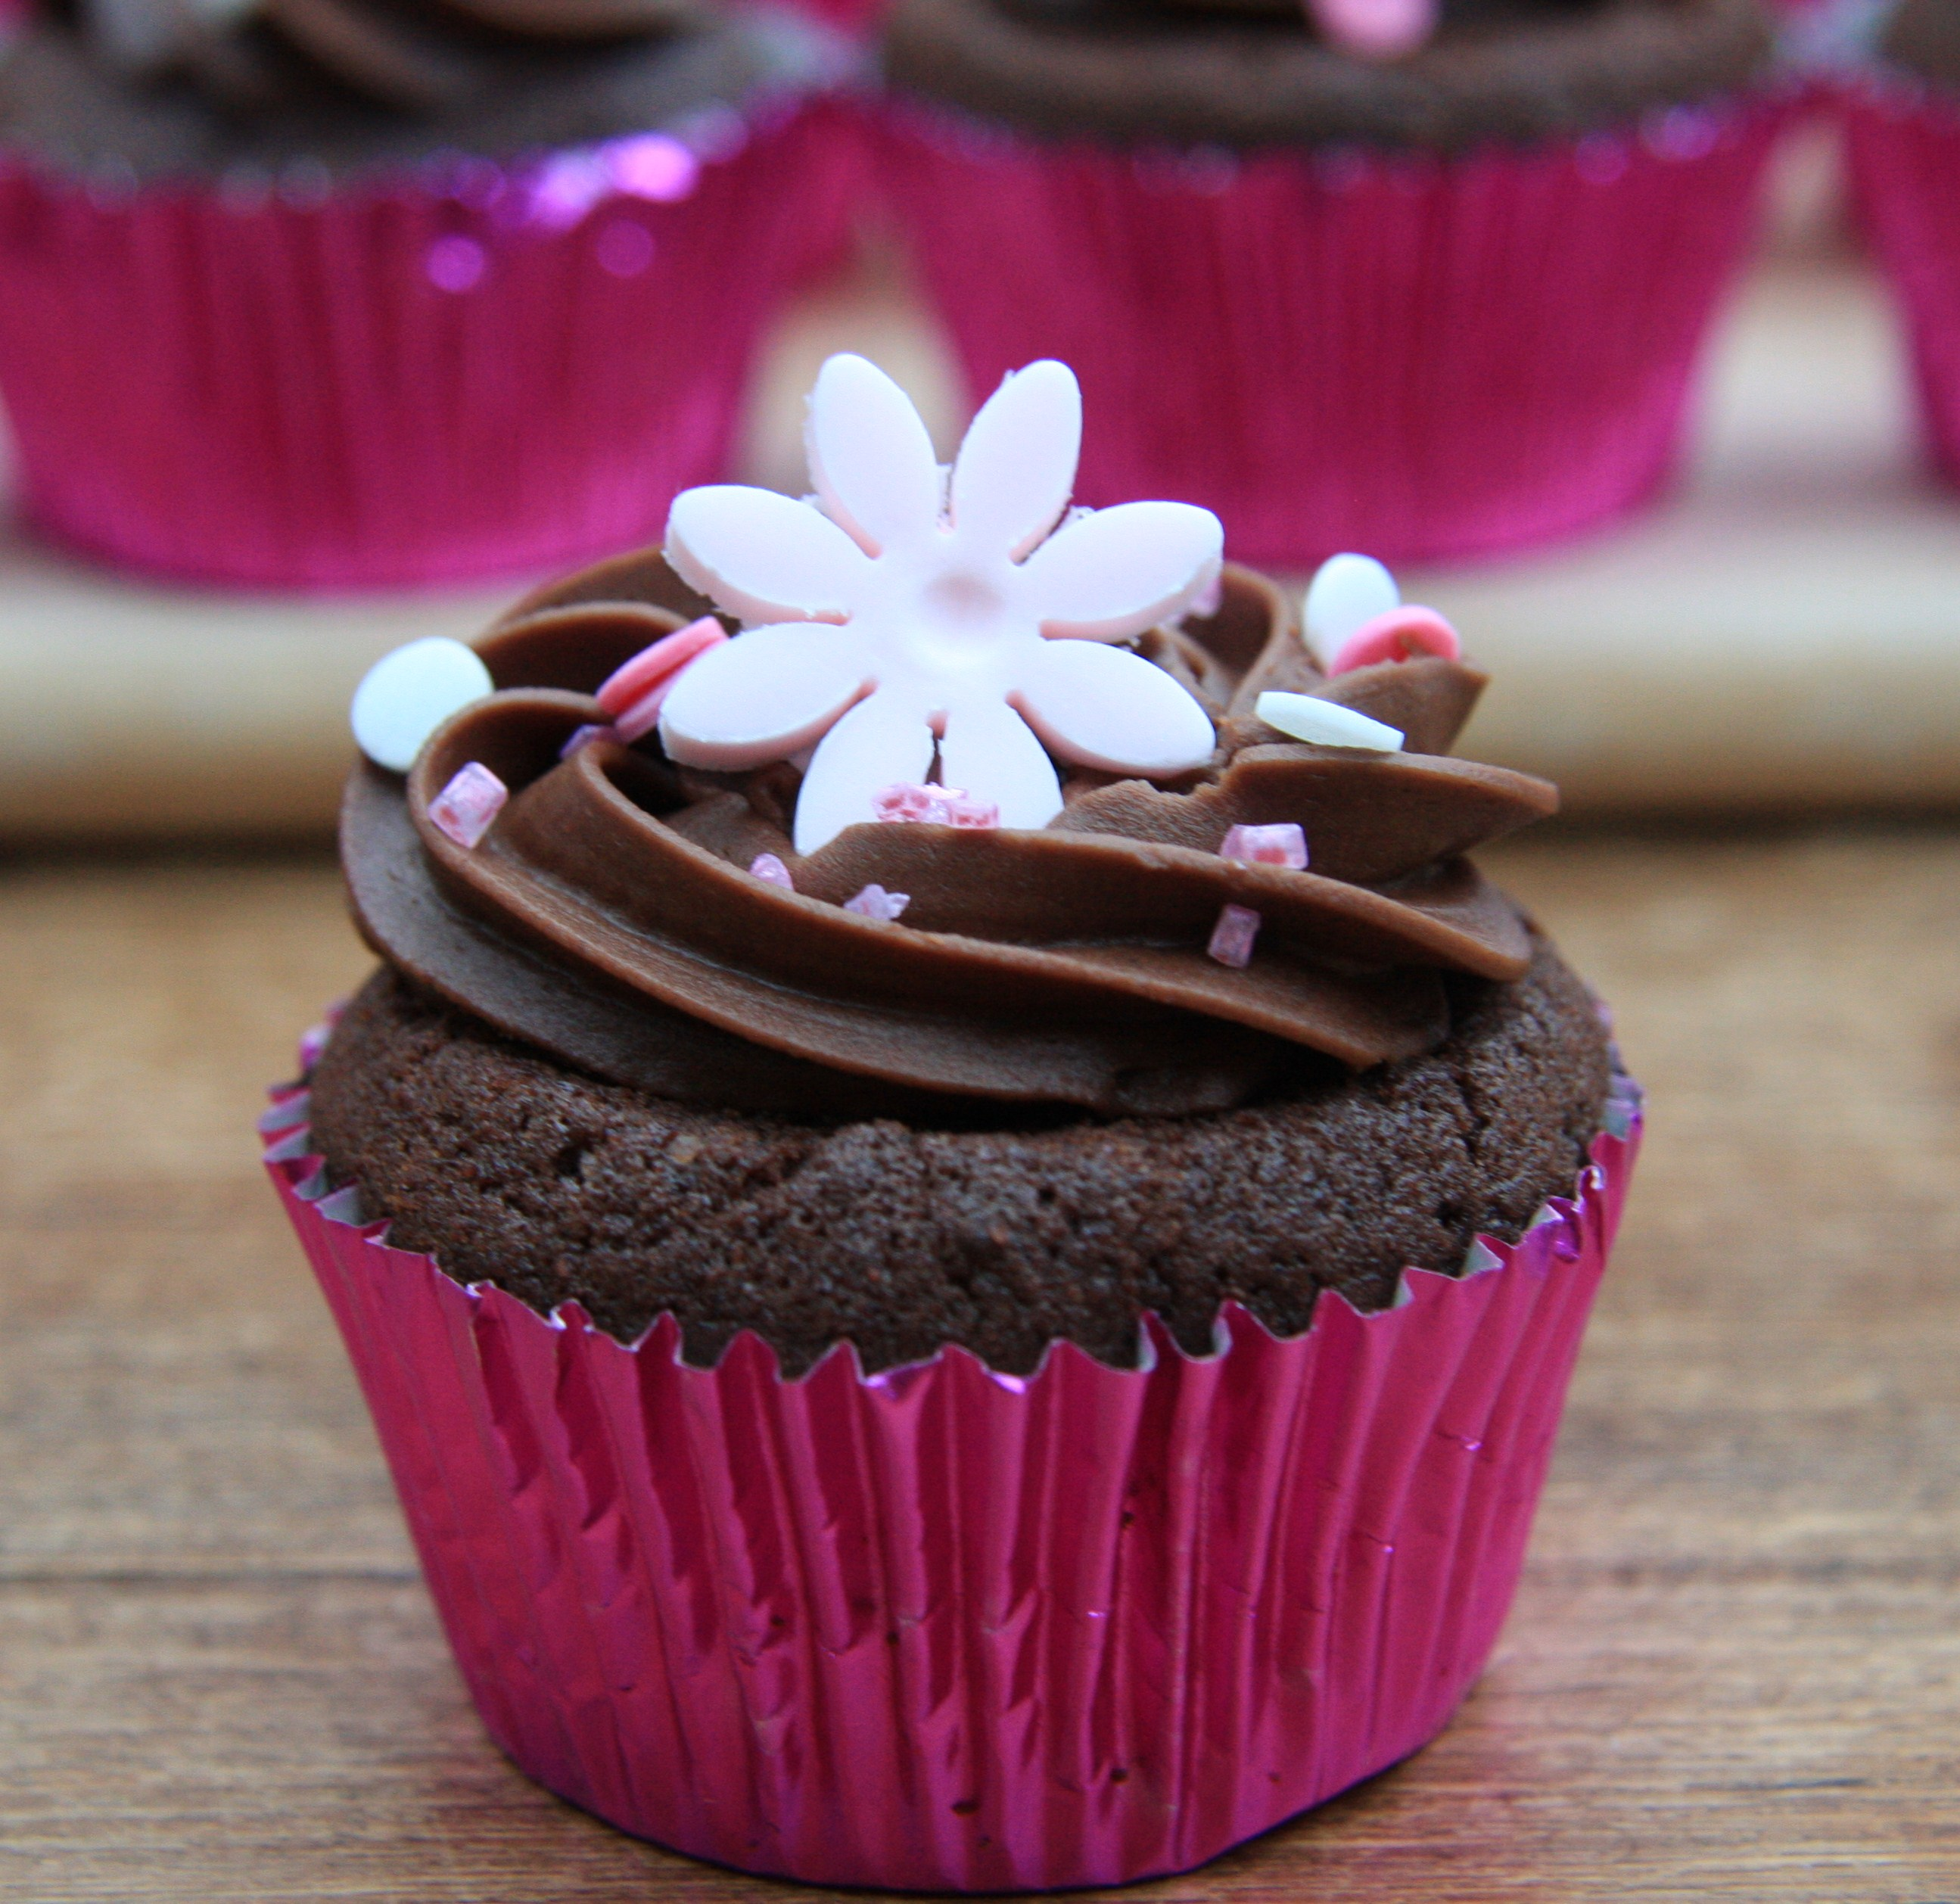 Chocolate Party Cupcakes with pink flower decorations – lovinghomemade